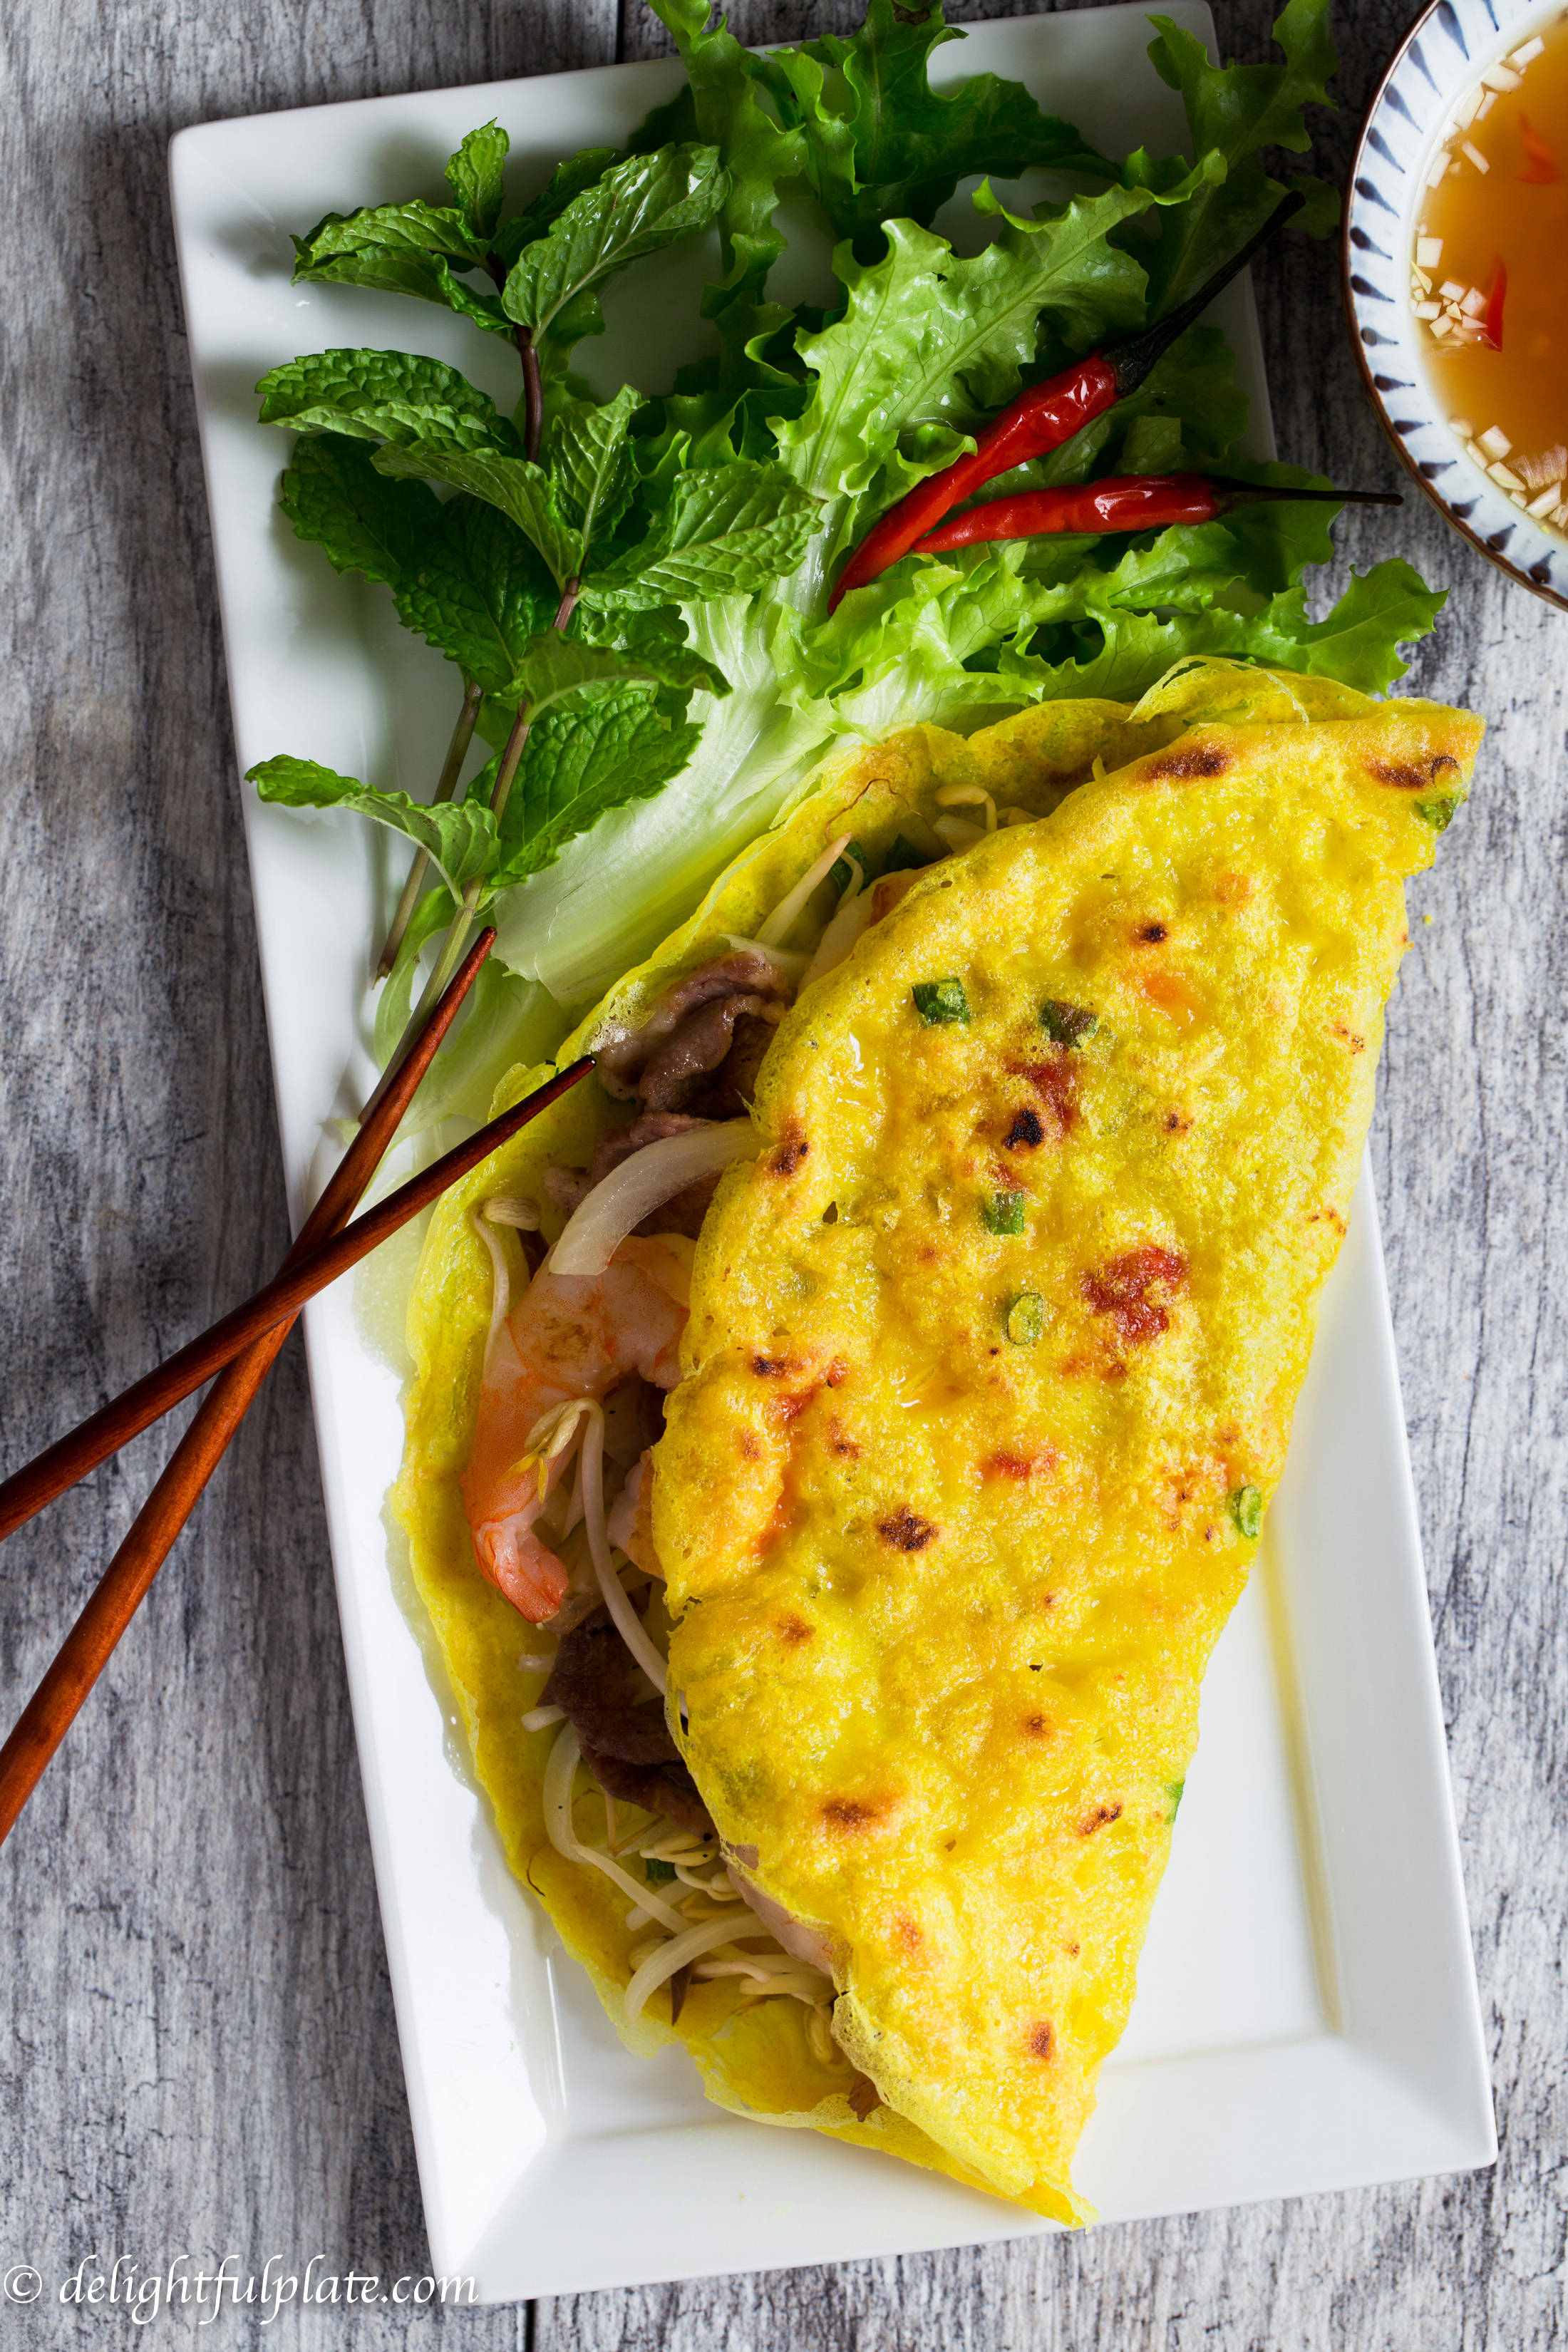 a Vietnamese Crepe (Banh Xeo) on a serving plate